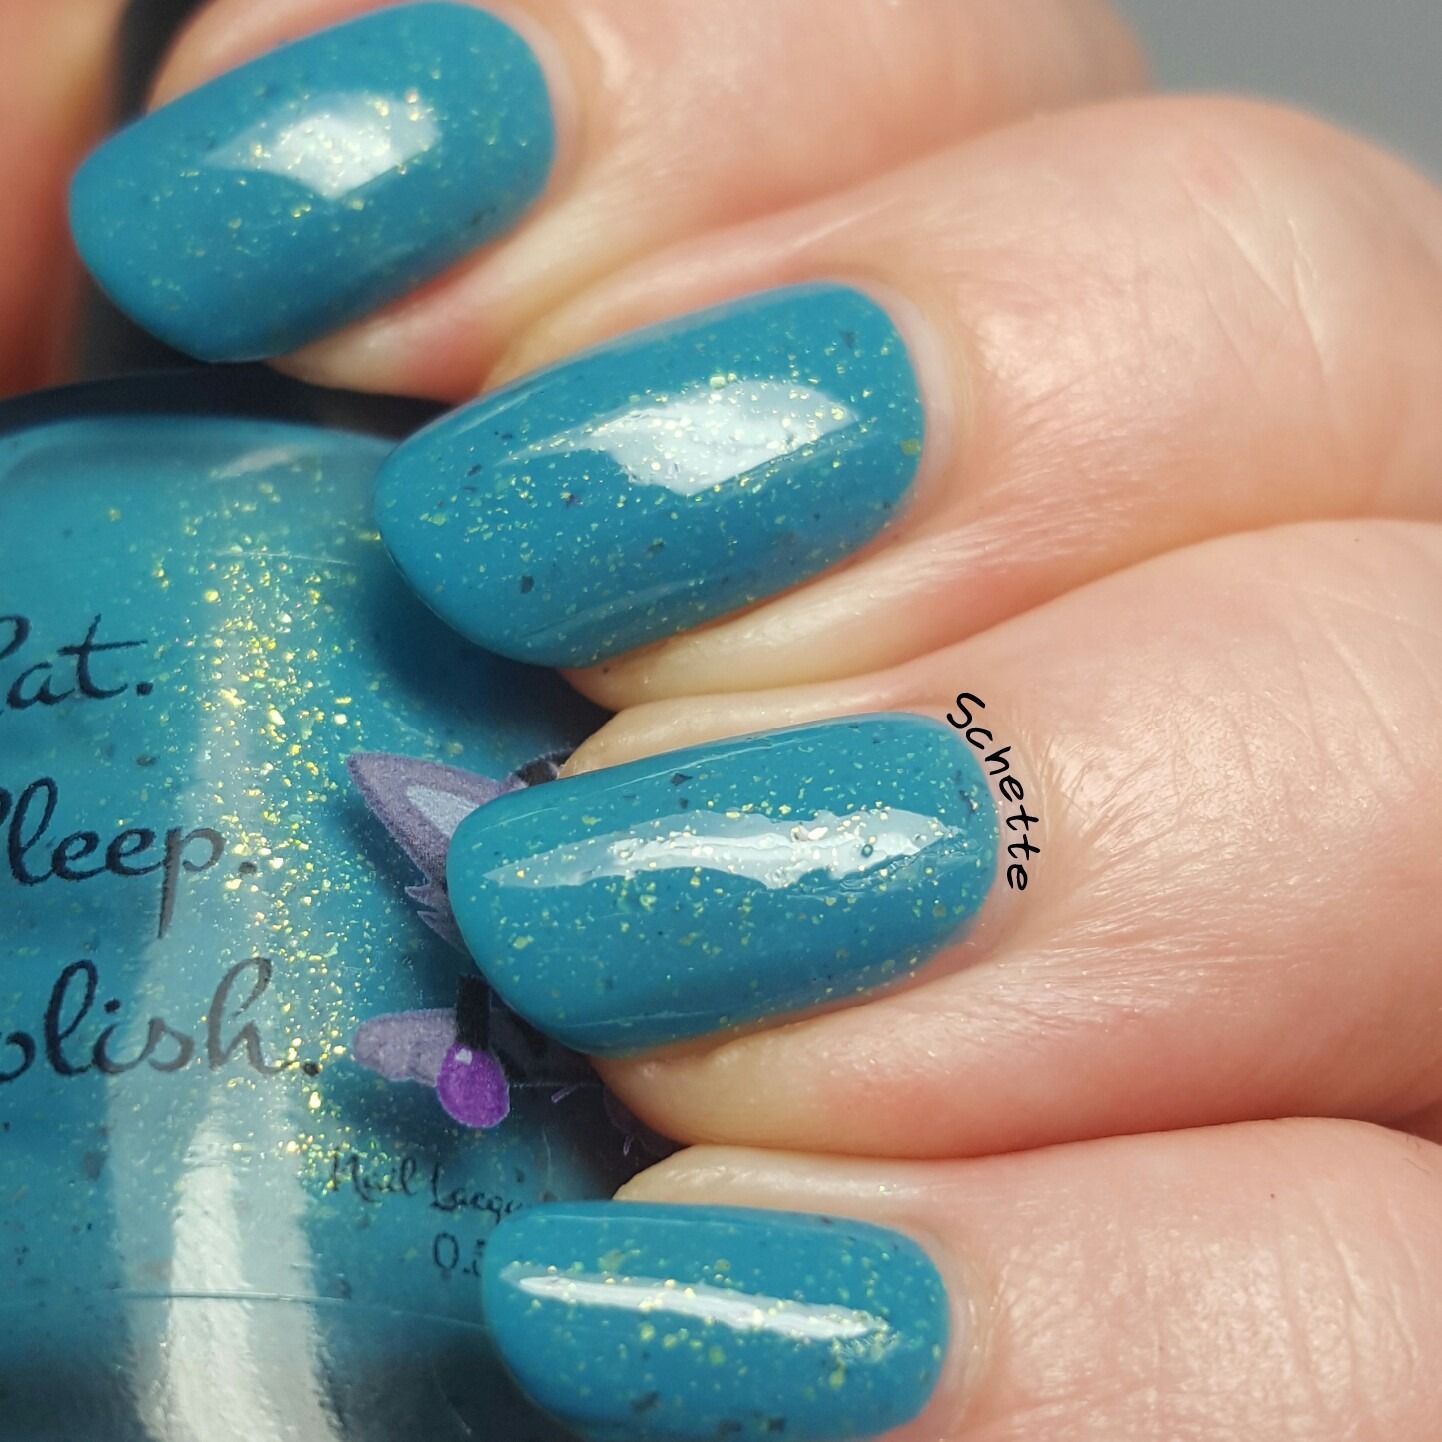 Eat Sleep Polish : Intuition